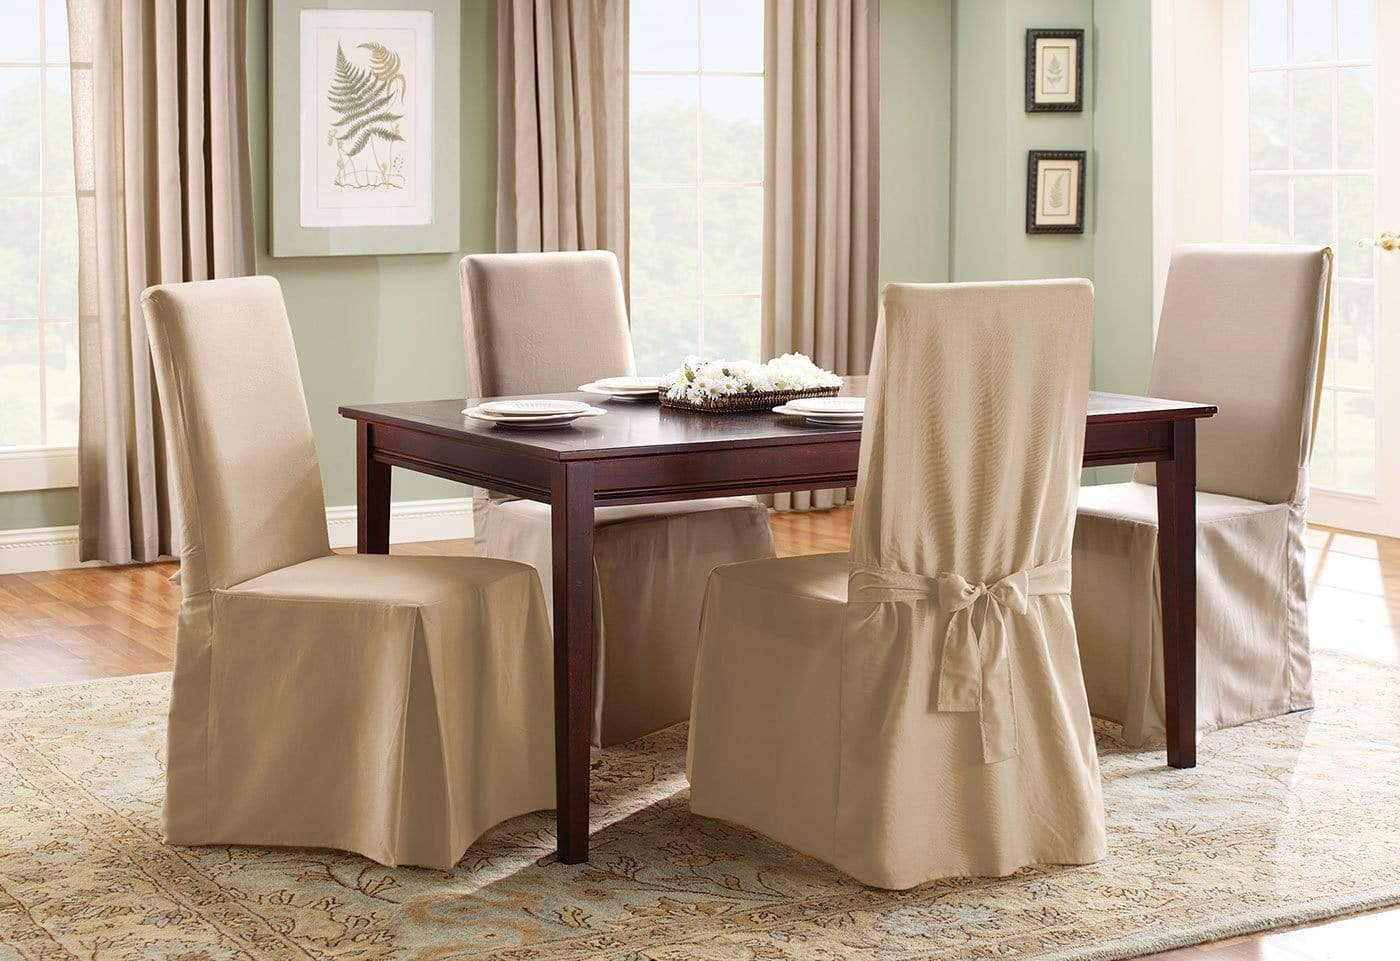 Cotton Duck Long Dining Chair Slipcover One Piece 100% Cotton Machine Washable - Dining Chair / Tan